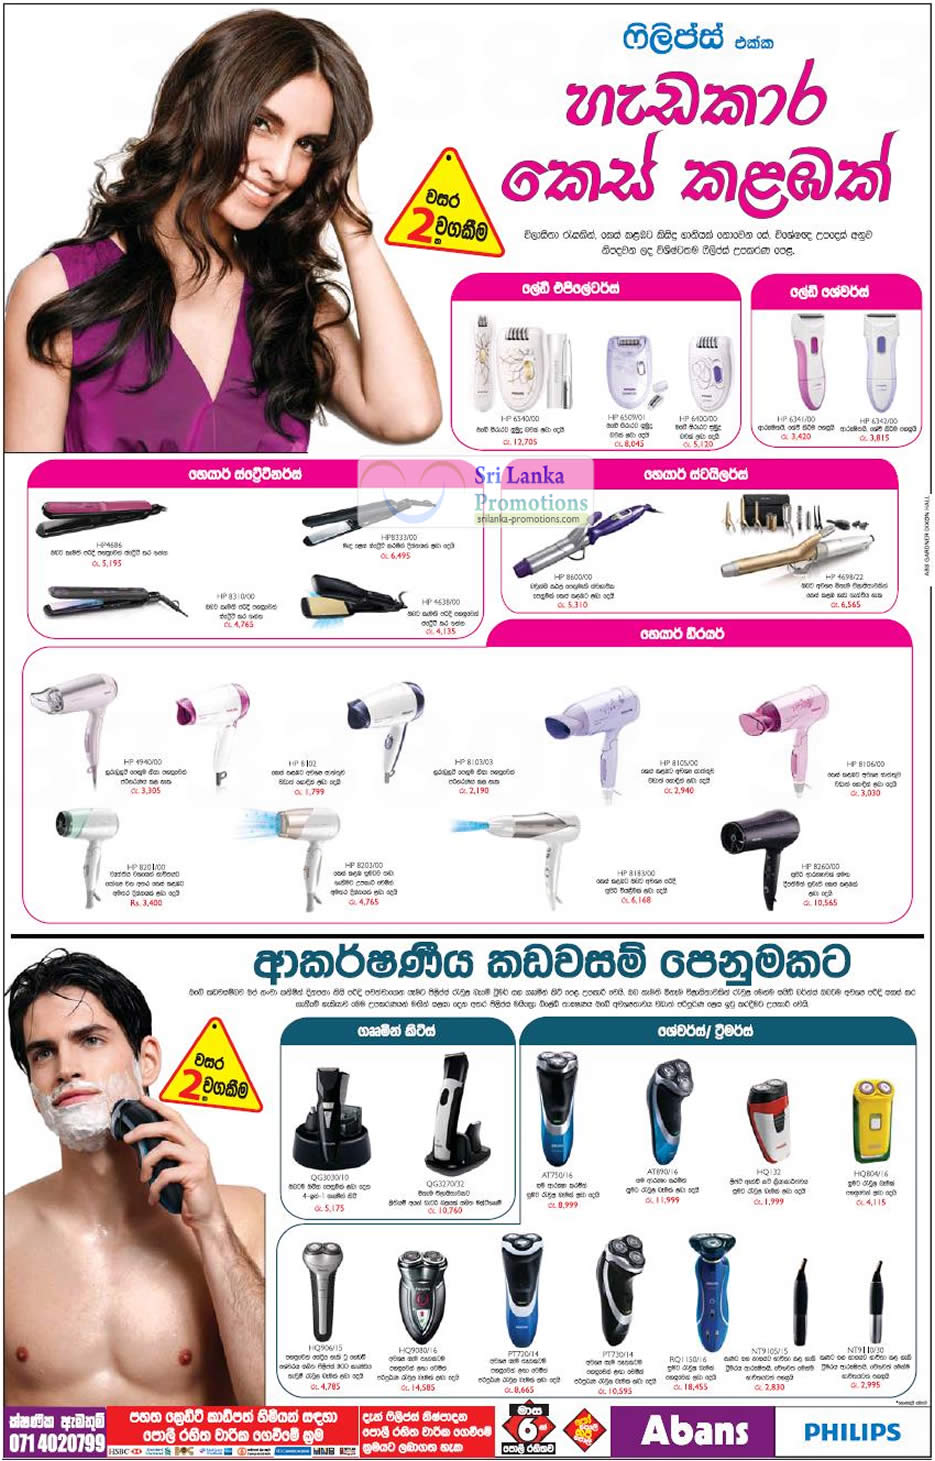 Philips Hair Straighteners Dryers Amp Shaver Abans Offers